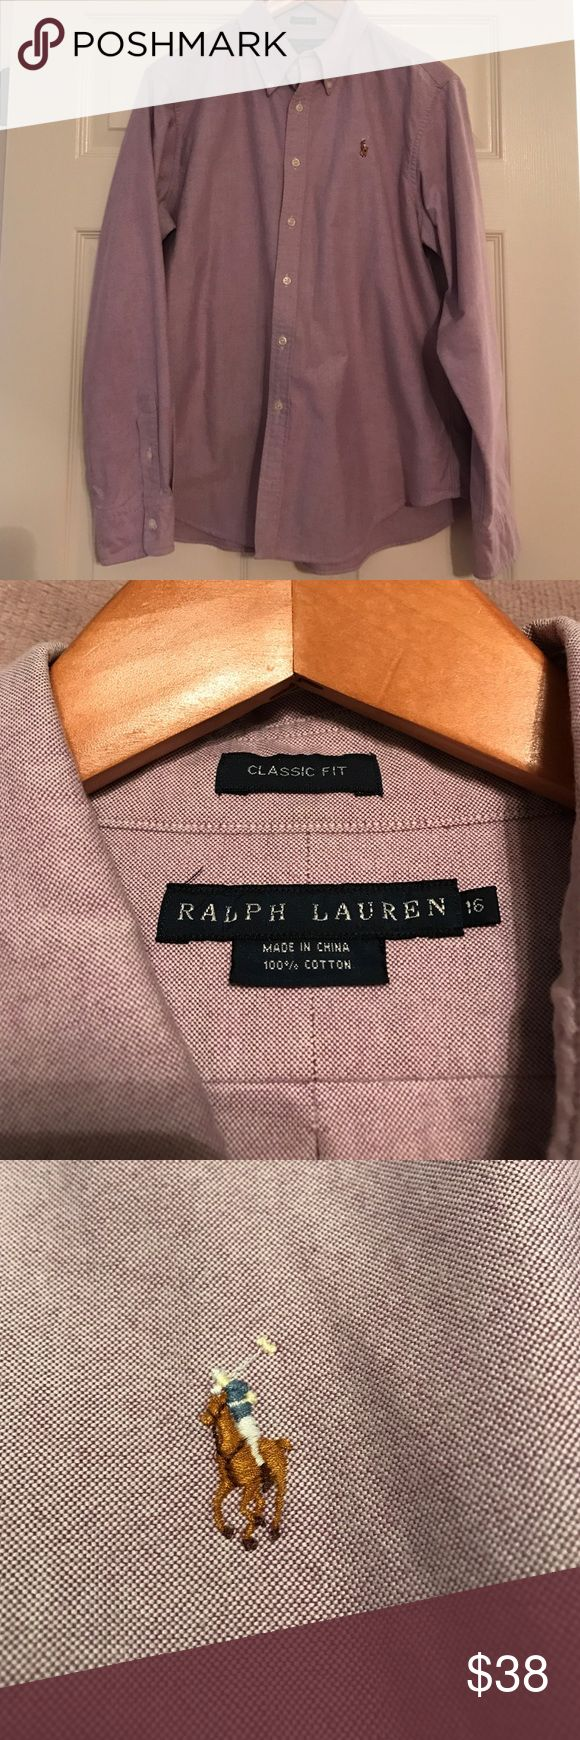 Ralph Lauren Oxford - light purple Light purple Ralph Lauren oxford shirt, women's size 16. Excellent condition. Let me know if you have any questions! Ralph Lauren Tops Button Down Shirts